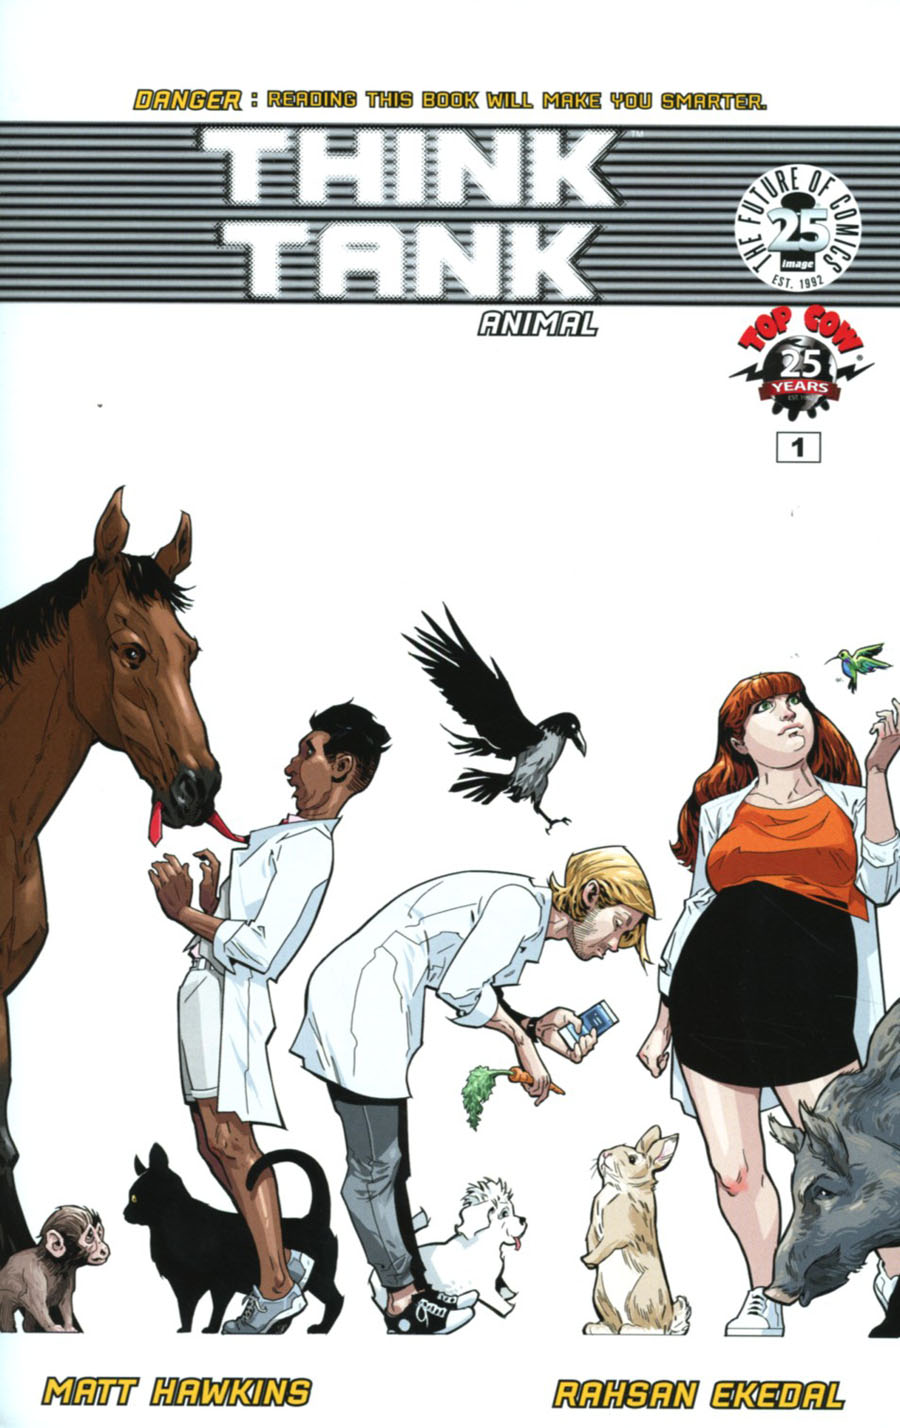 Think Tank Vol 2 #1 Cover B Variant Rahsan Ekedal Cover